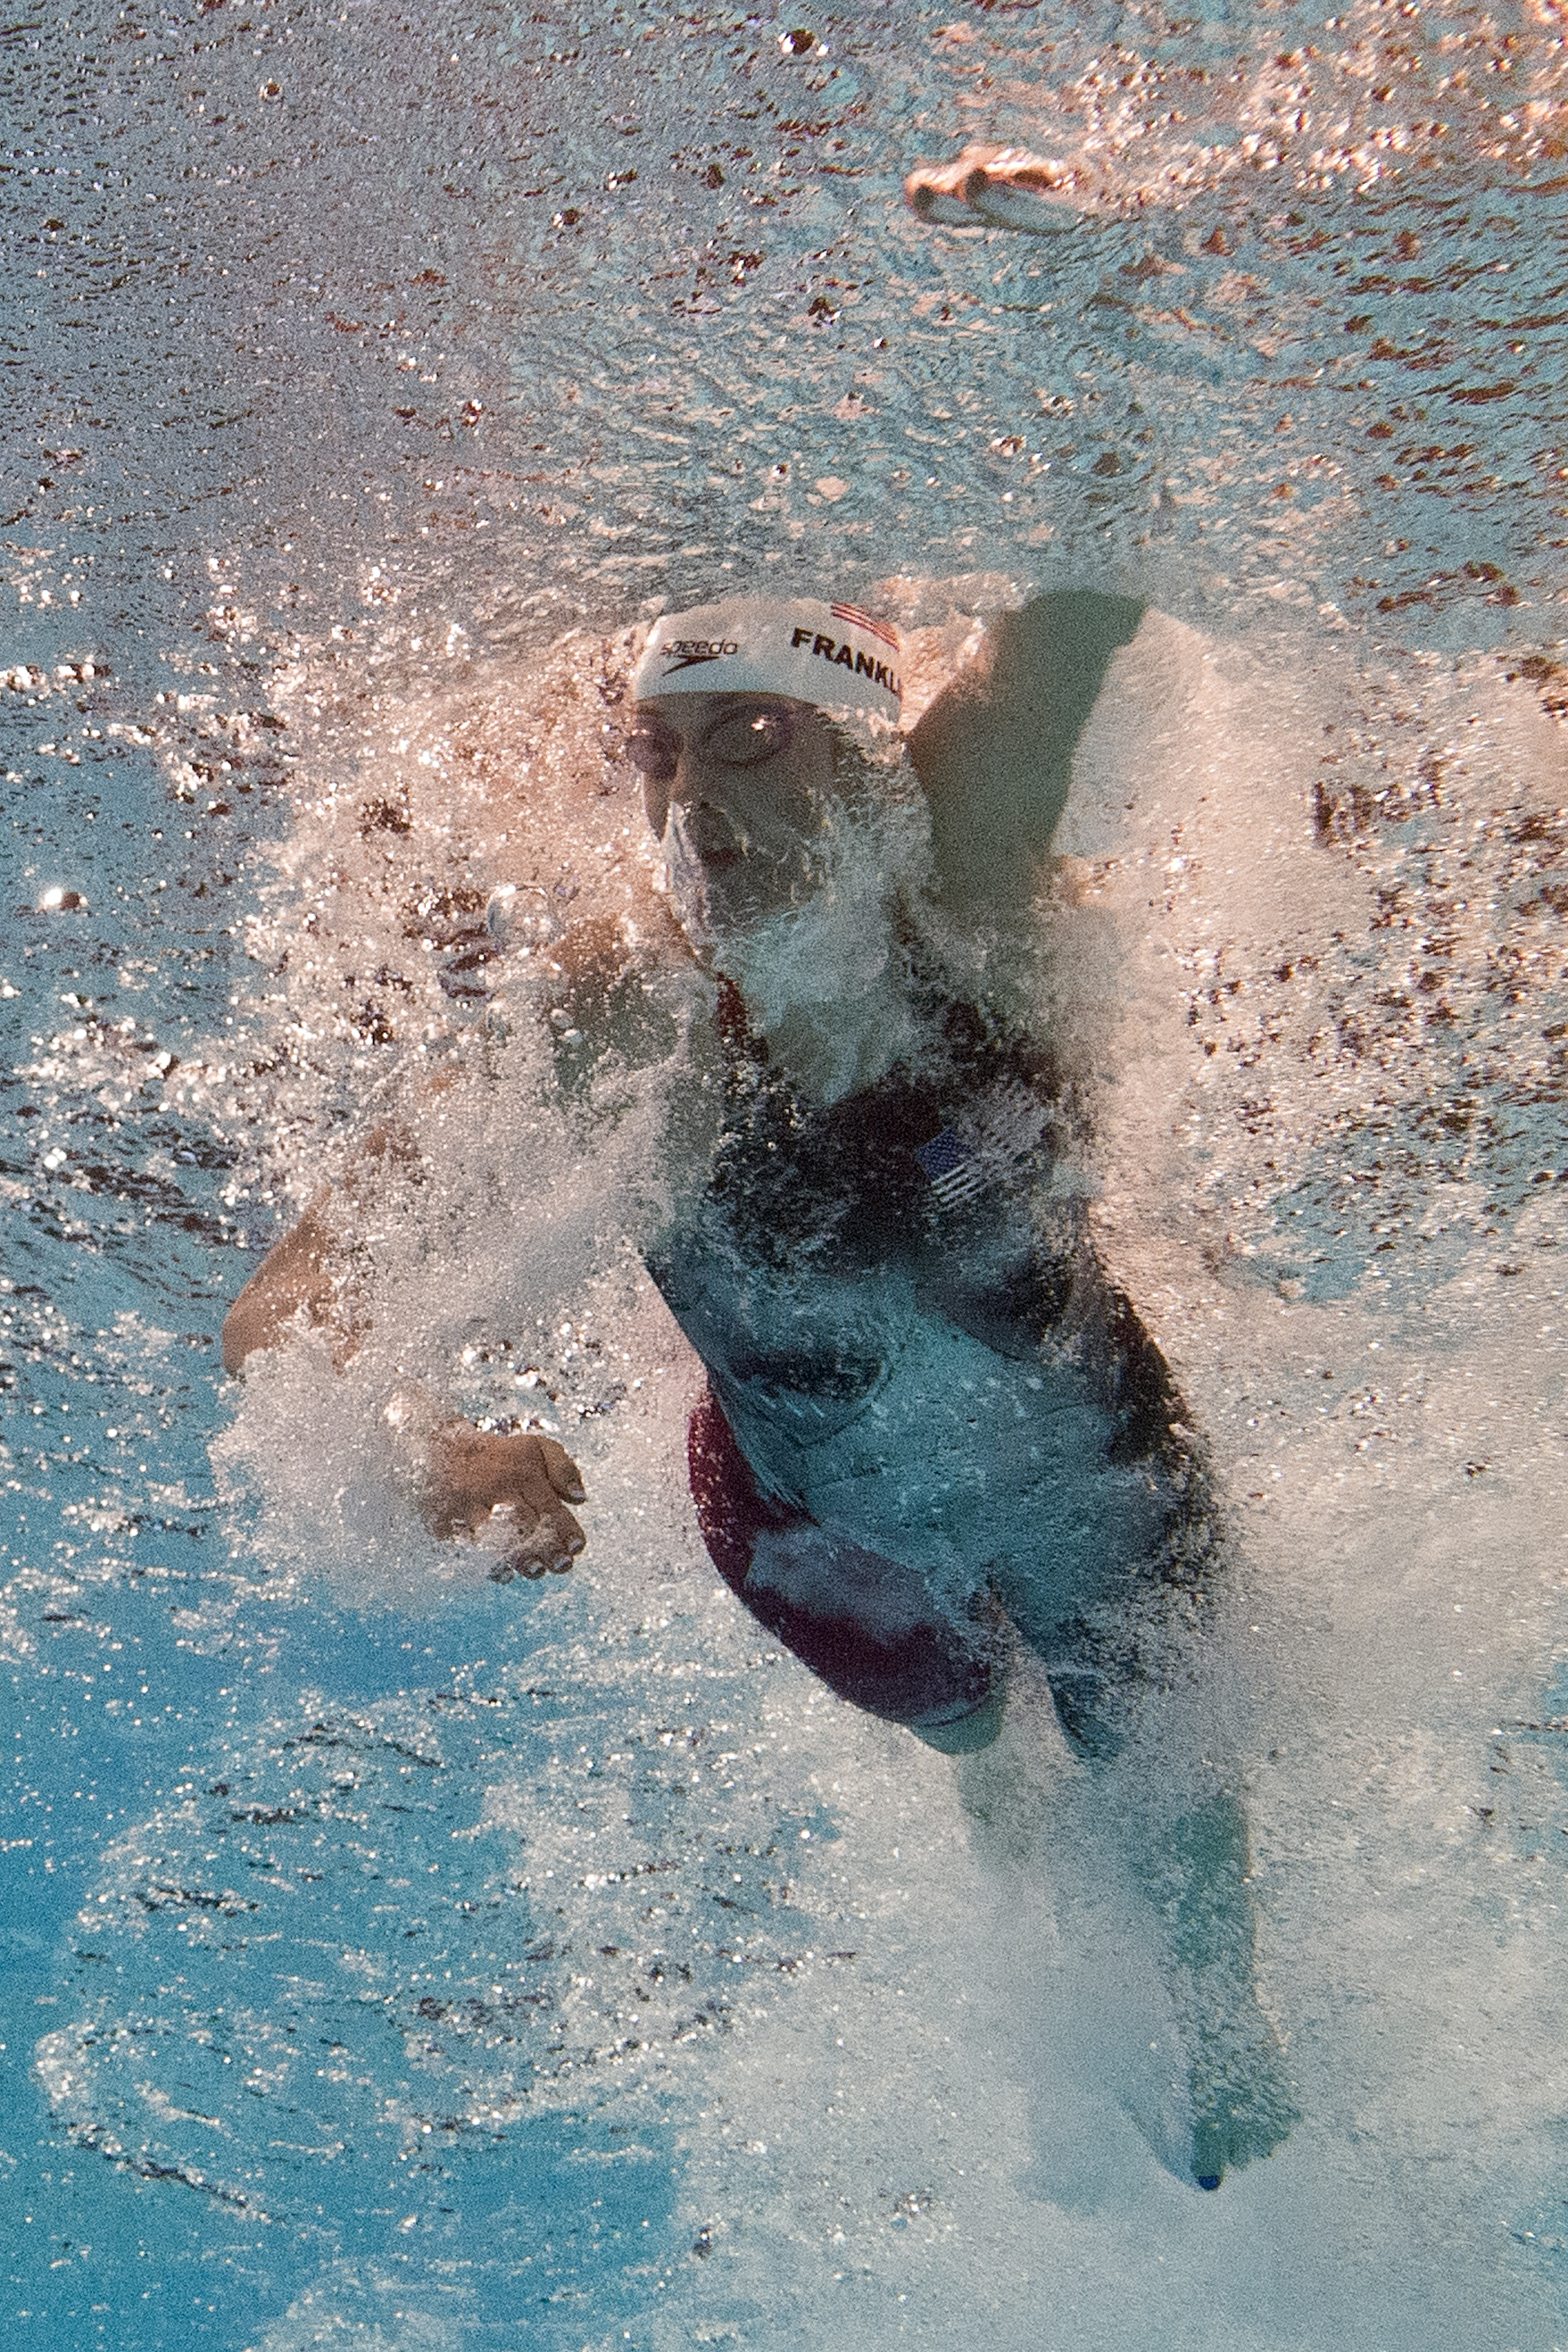 In a picture taken with an underwater camera US swimmer Missy Franklin competes in the heats of the women's 100-metre freestyle swimming event in the FINA World Championships at Palau Sant Jordi in Barcelona on August 1, 2013.  (Photo credit: FRANCOIS XAVIER MARIT/AFP/Getty Images)